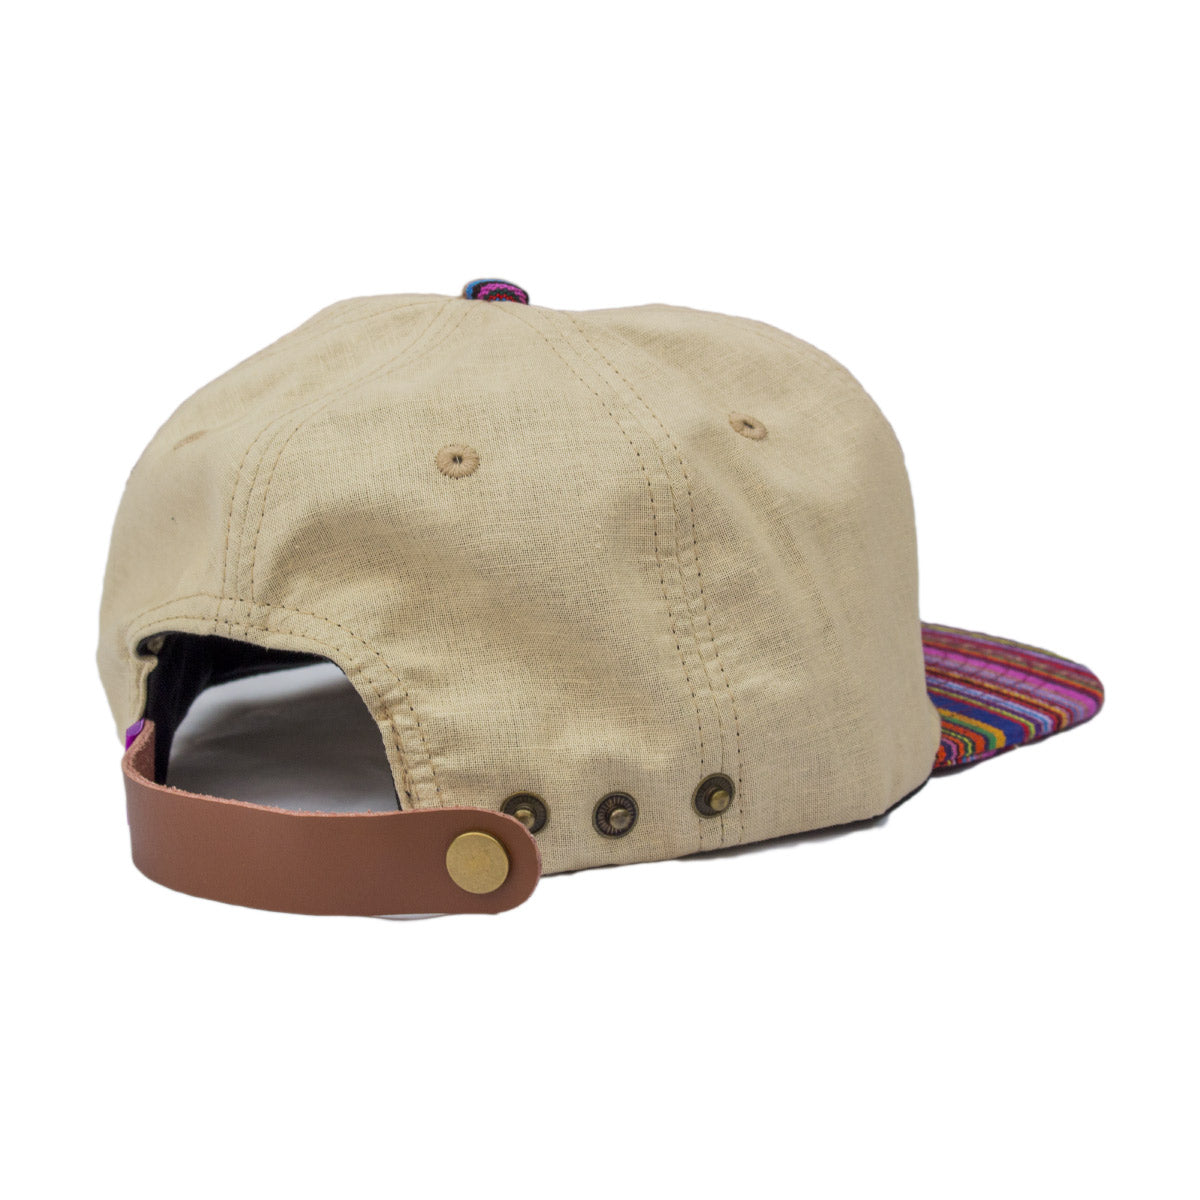 Snappies Back Snaps - Brochacho Snapback